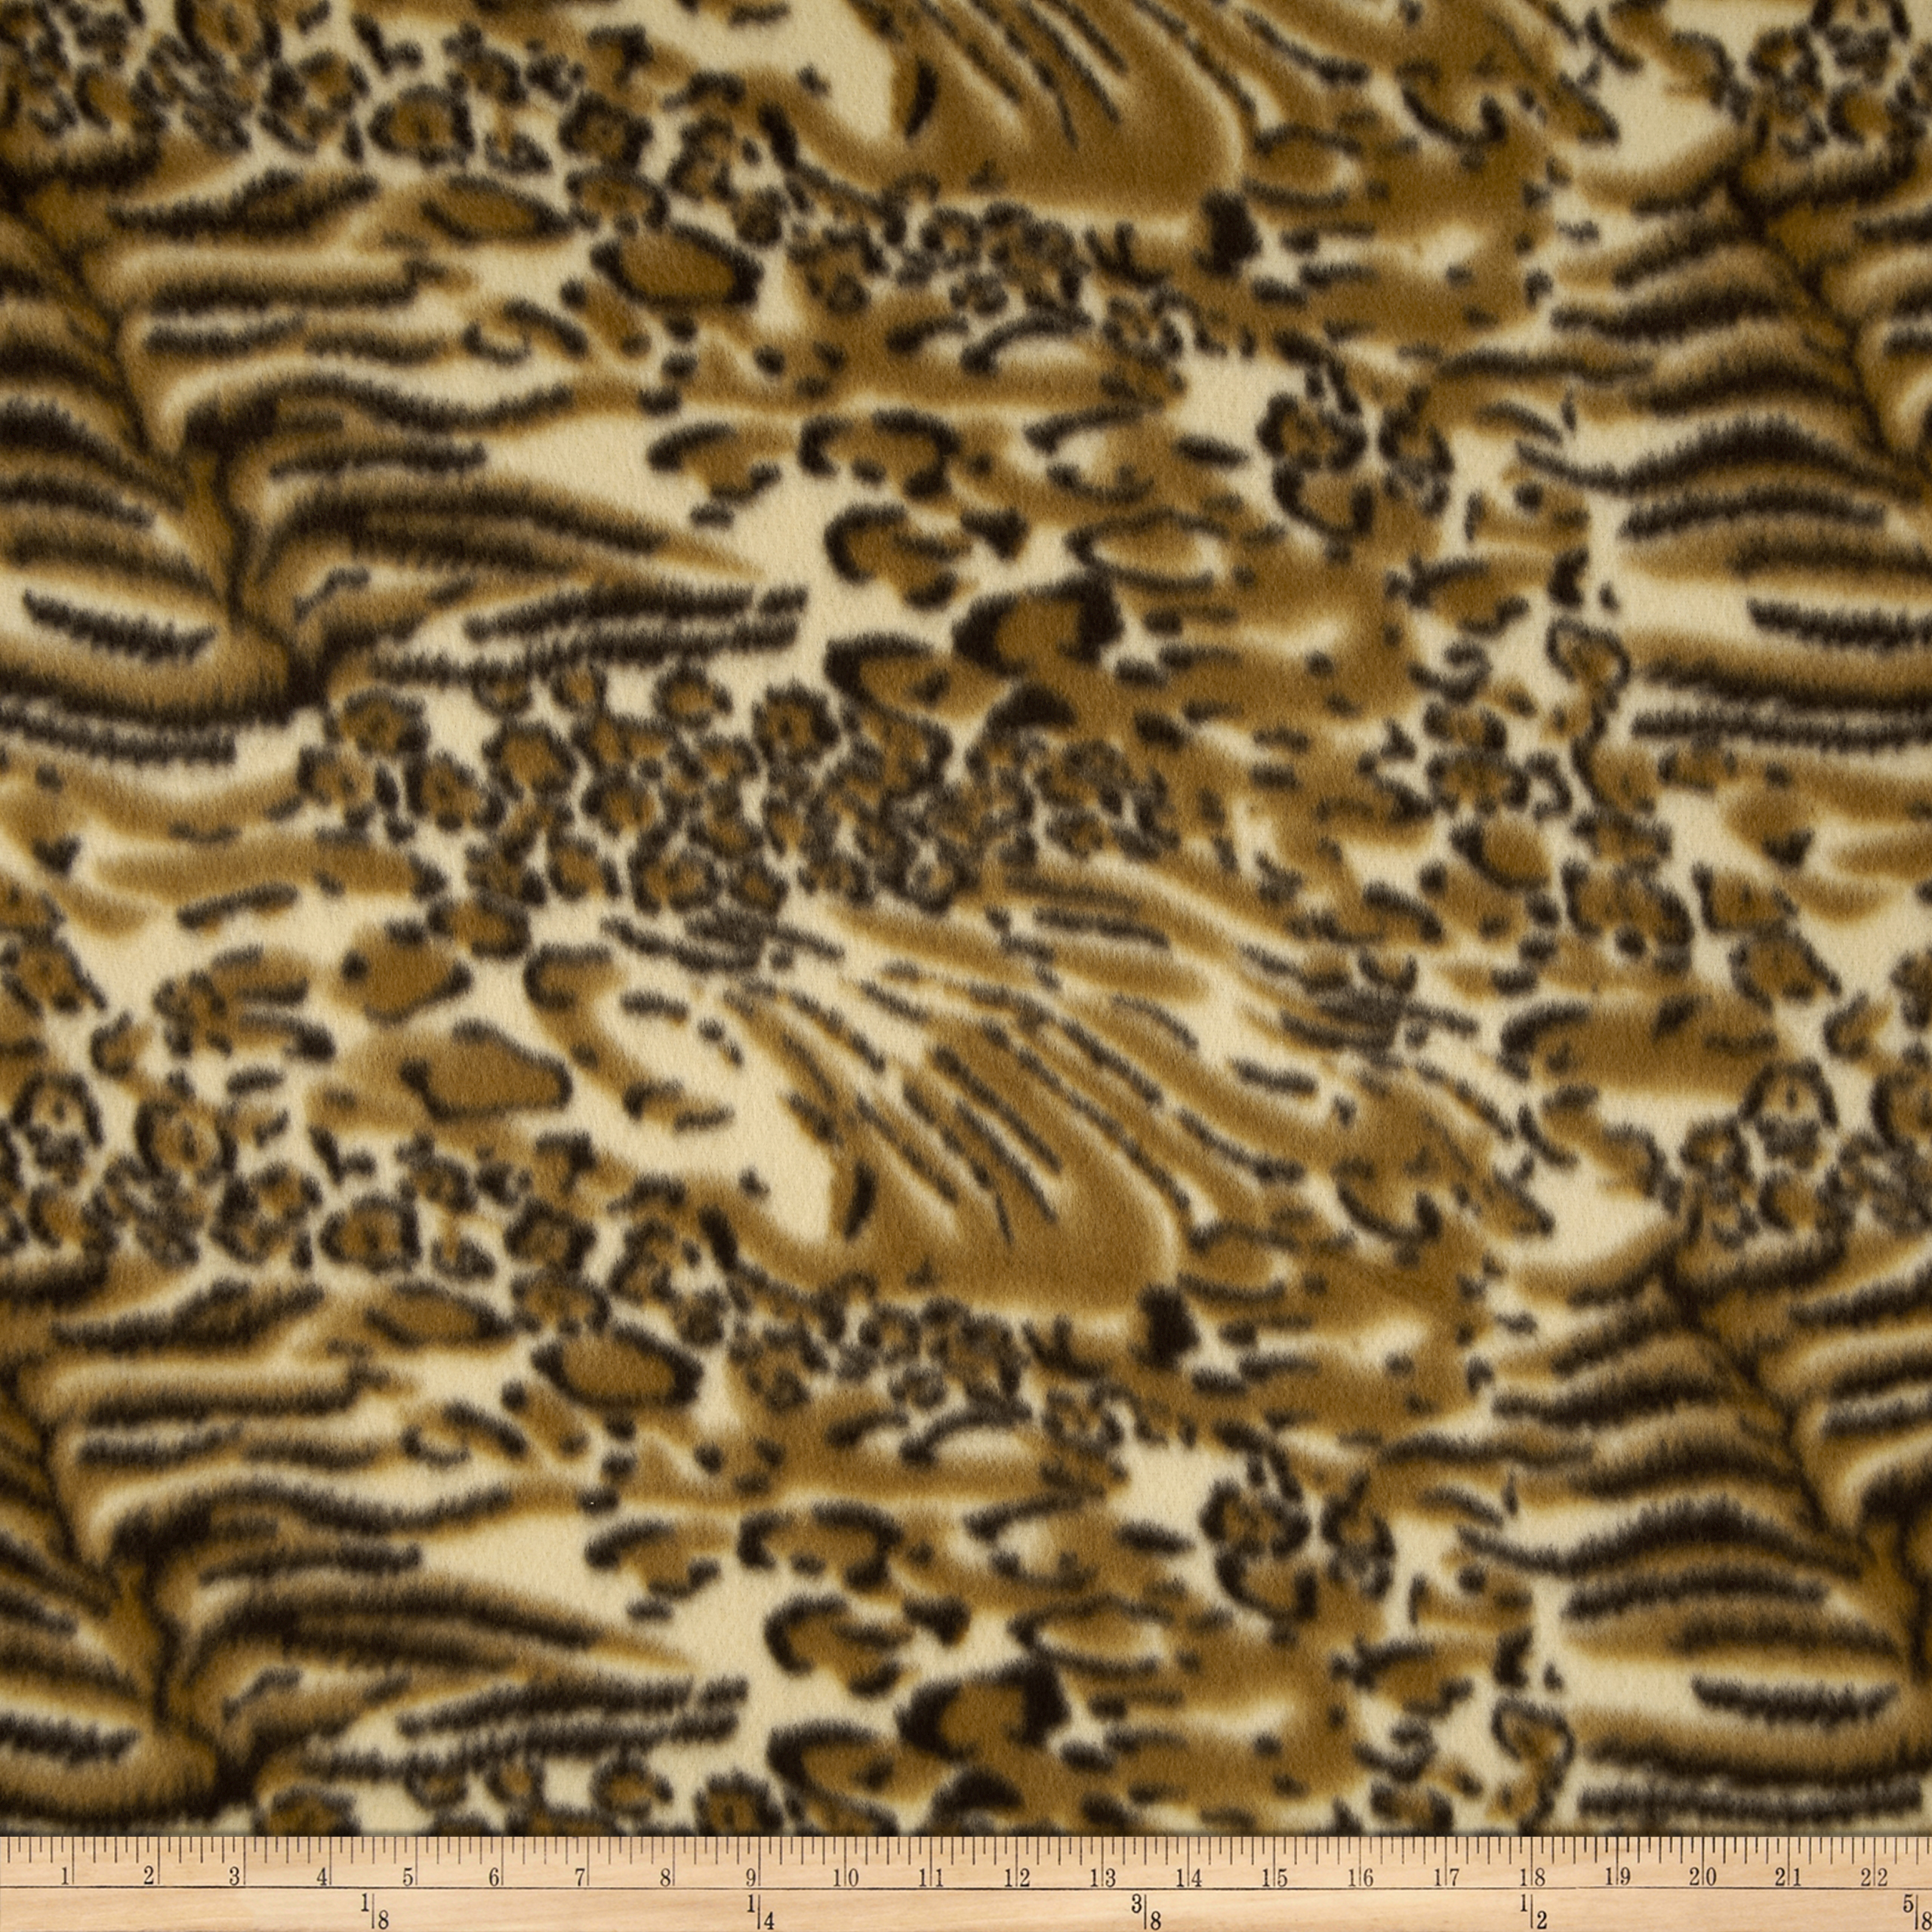 Printed Fleece Cheetah & Tiger Brown Fabric